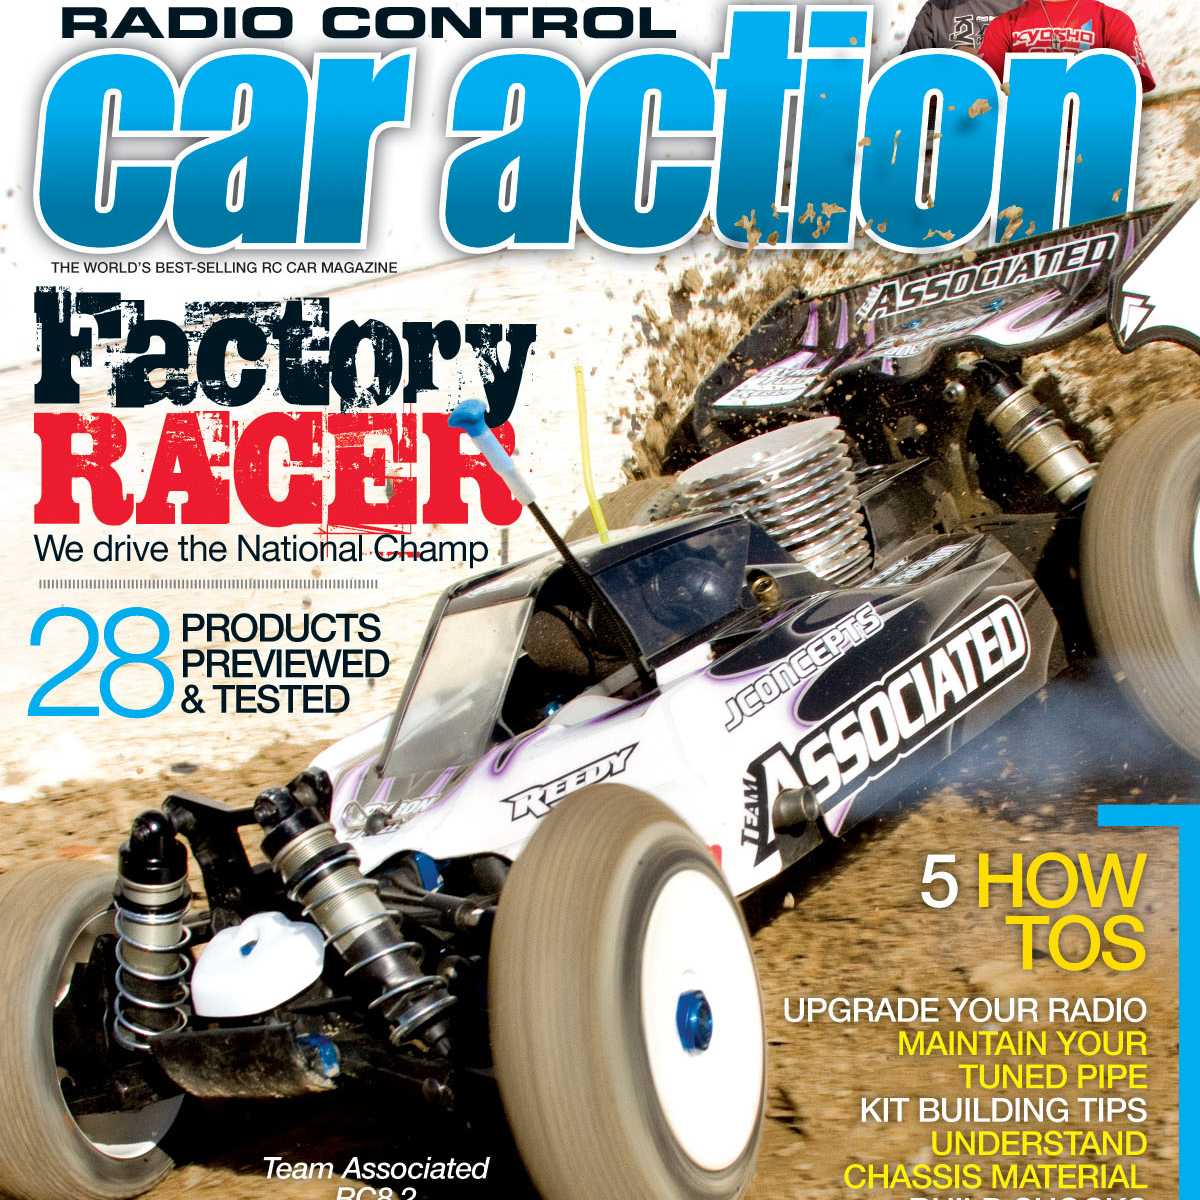 Radio Control Car Action March 2012 magazine on sale now.  Check out some photos from the issue!